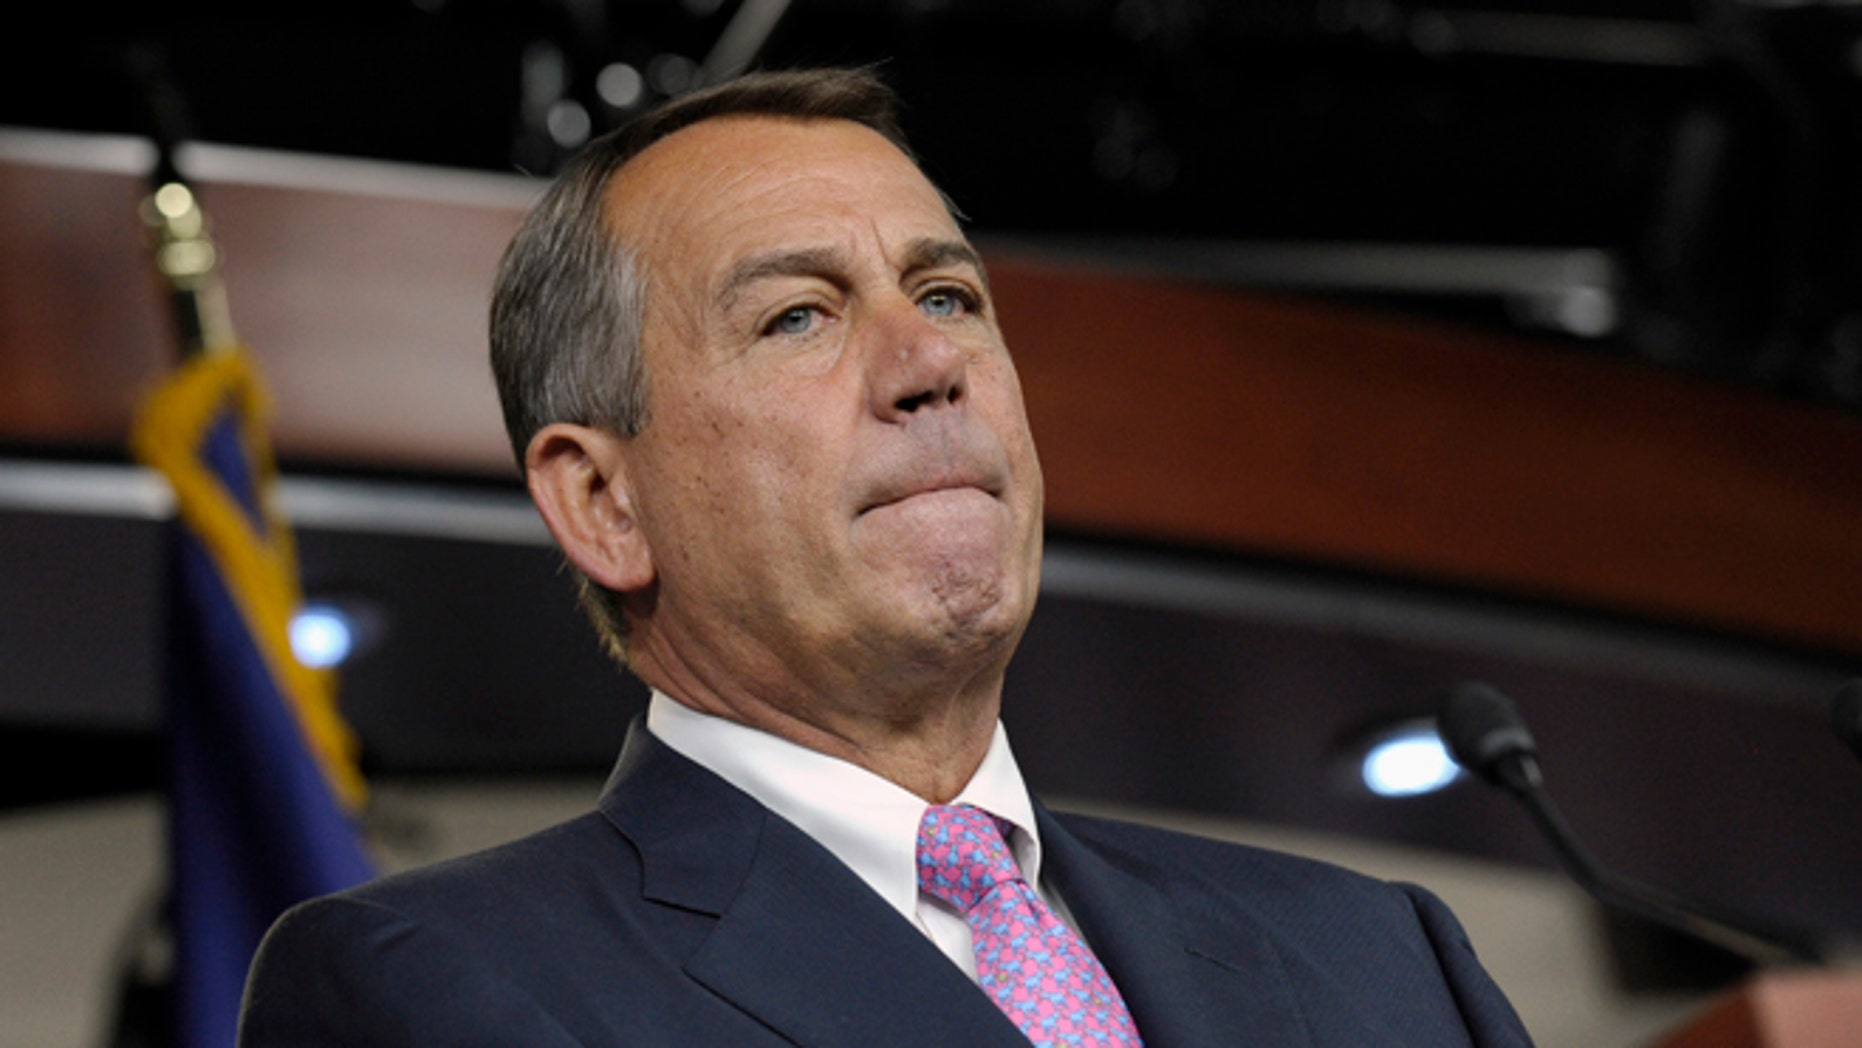 June 27, 2013: House Speaker John Boehner pauses during a news conference on Capitol Hill in Washington.